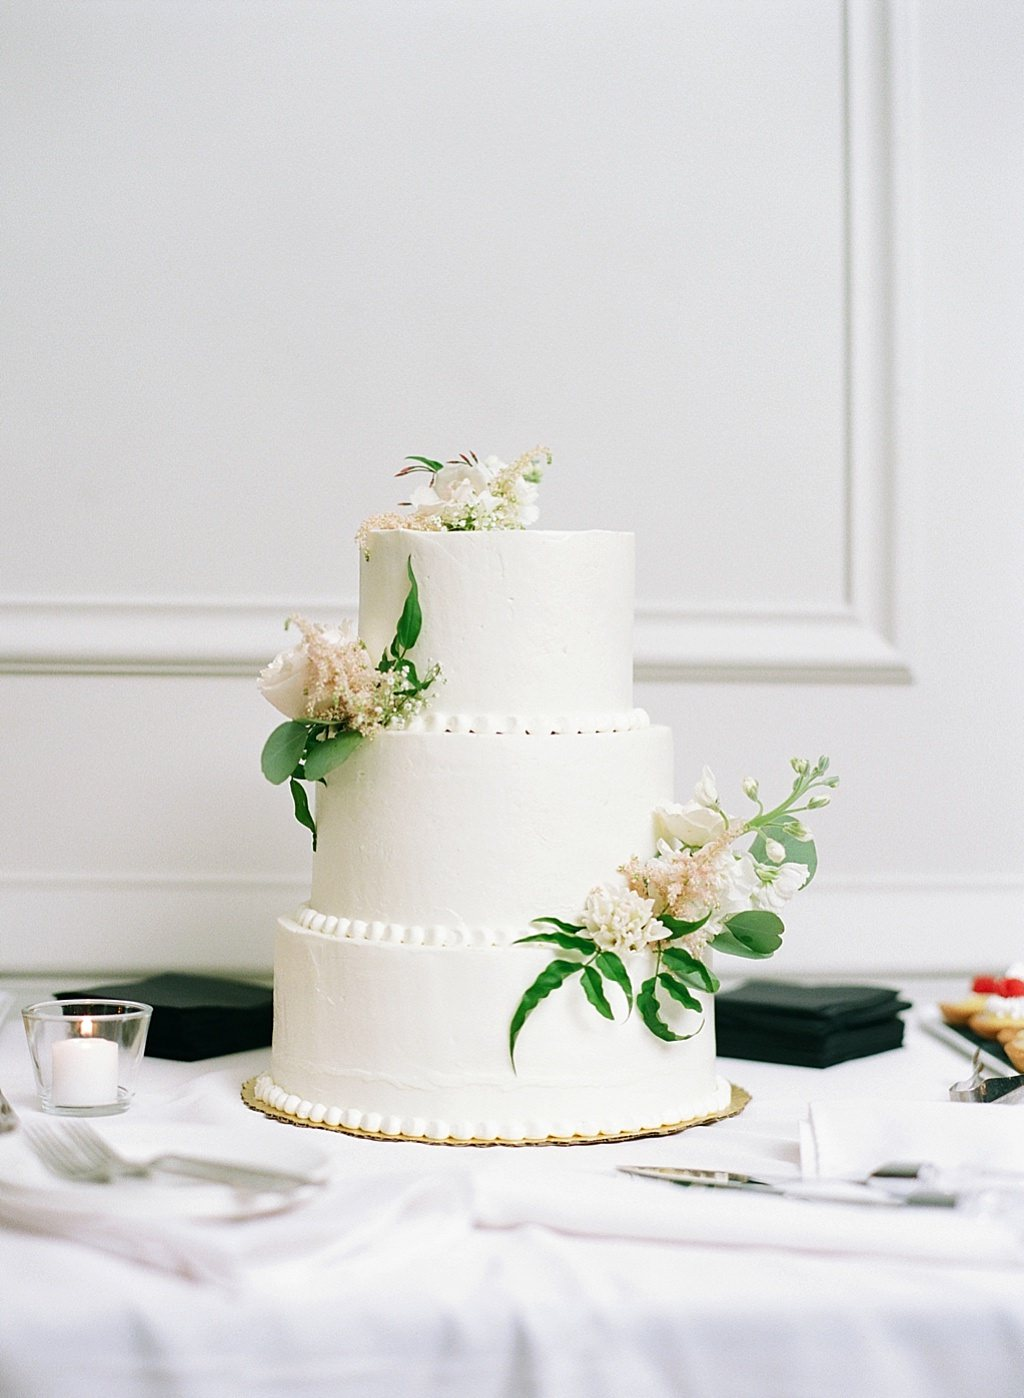 Modern Classic Smooth White Three Tier Wedding Cake Adorned with Greenery and Ivory Florals